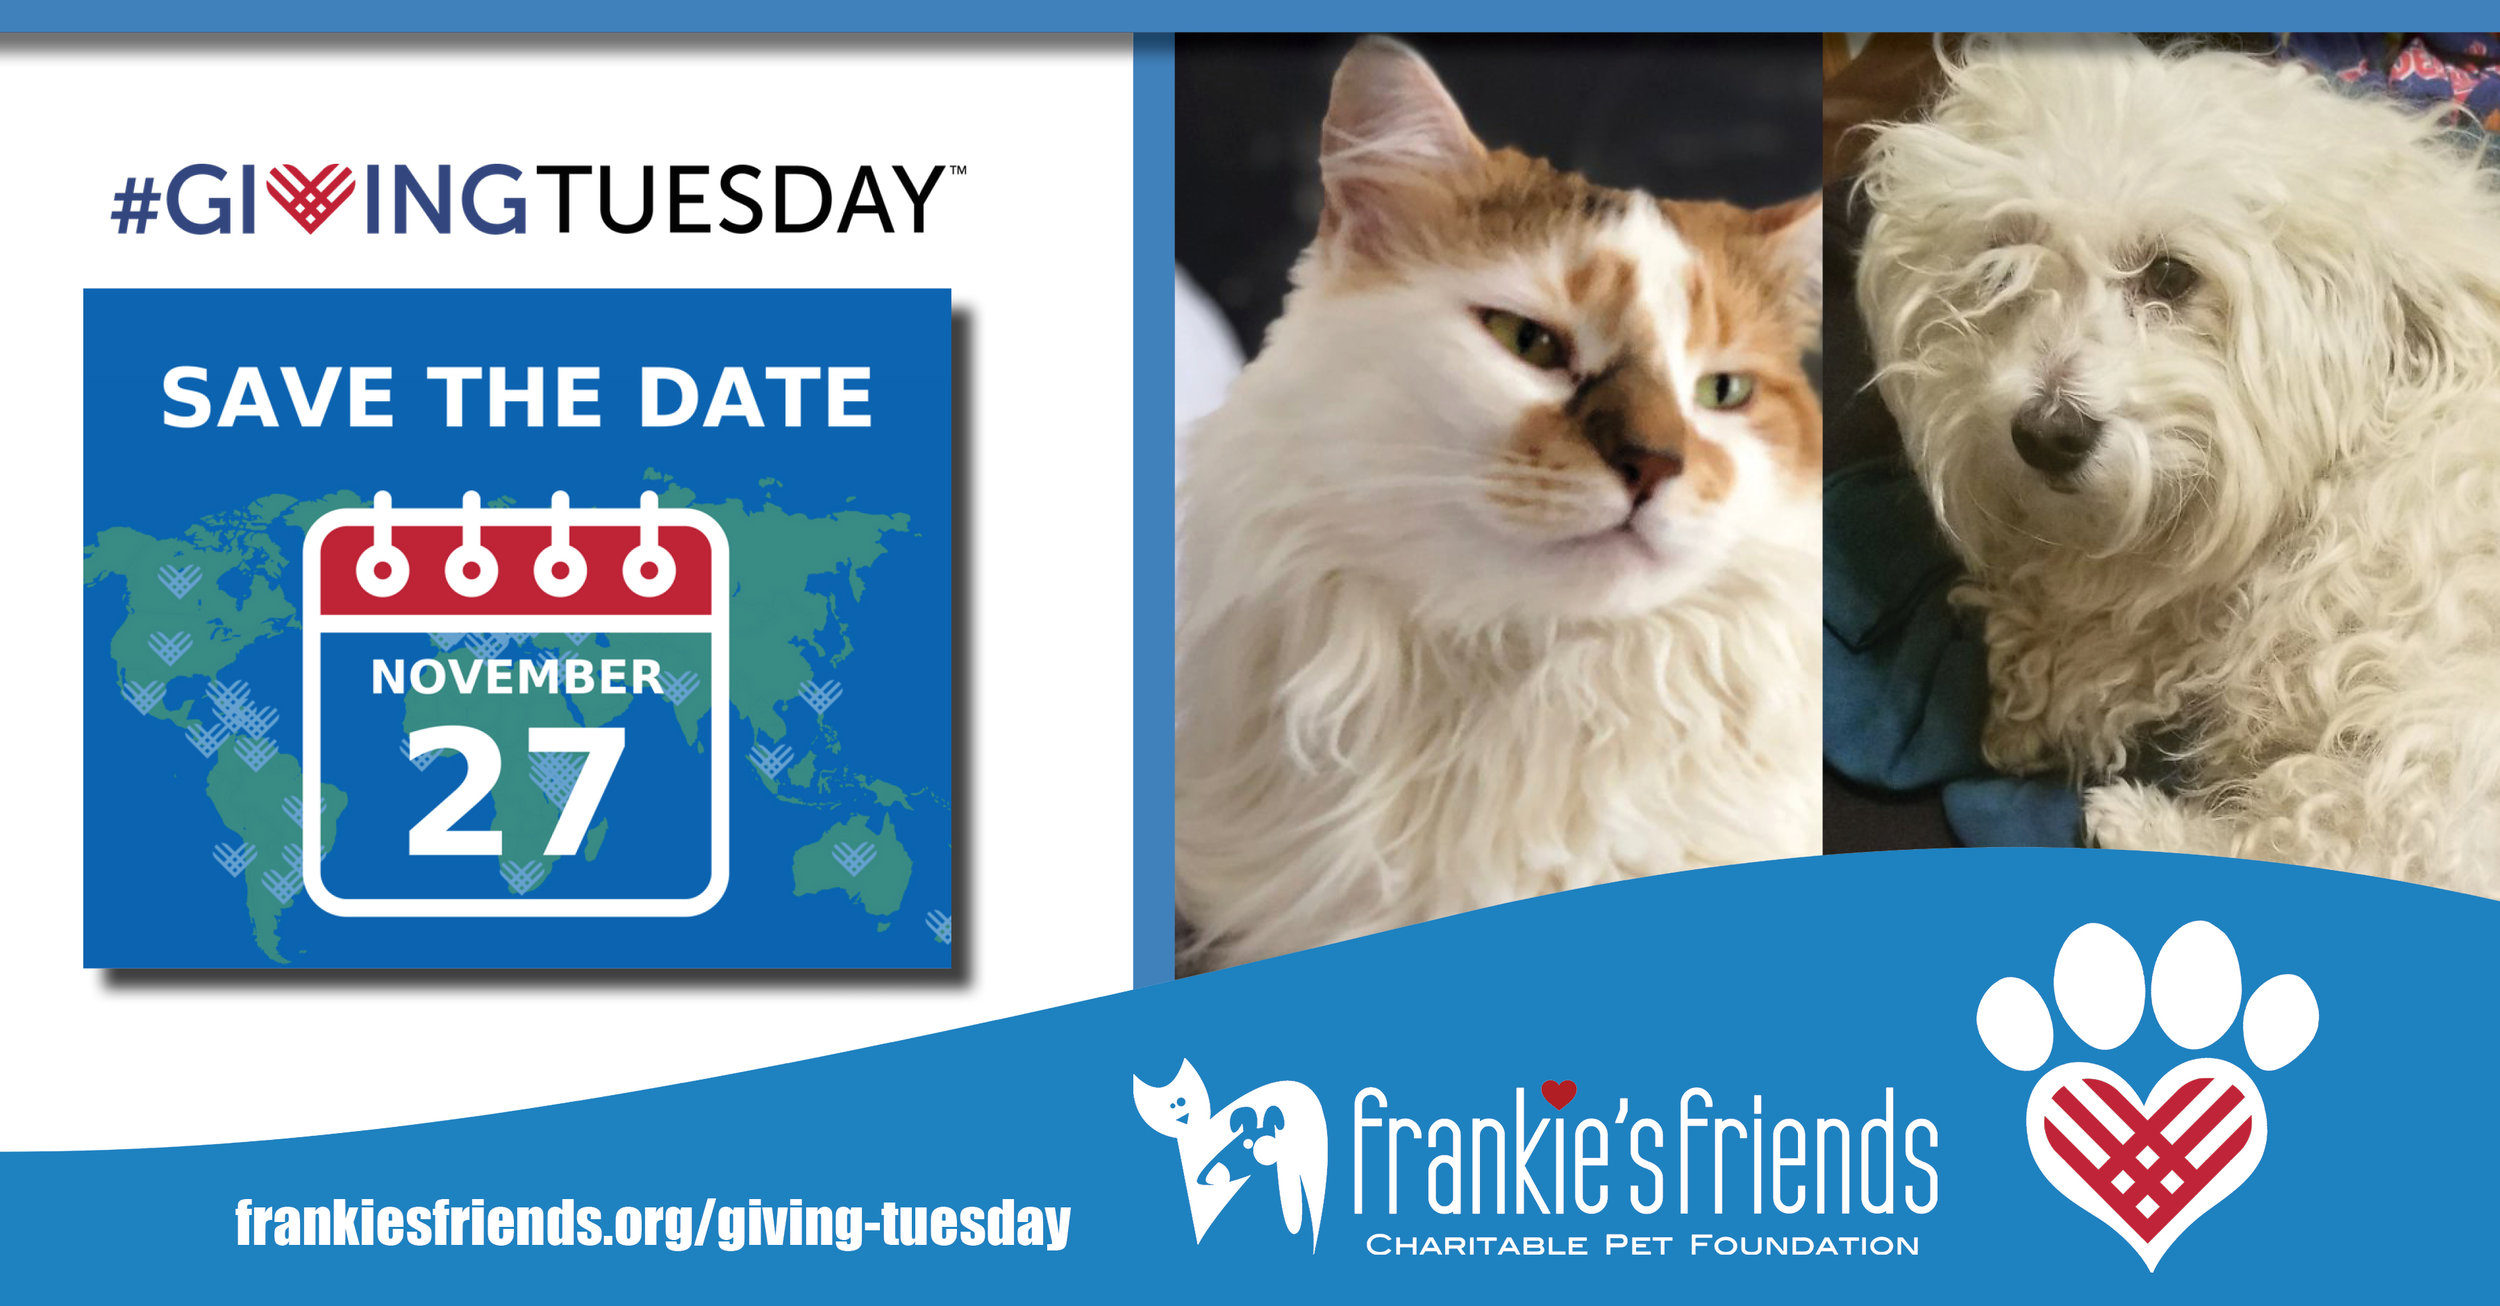 giving tuesday ff fb event banner.jpg